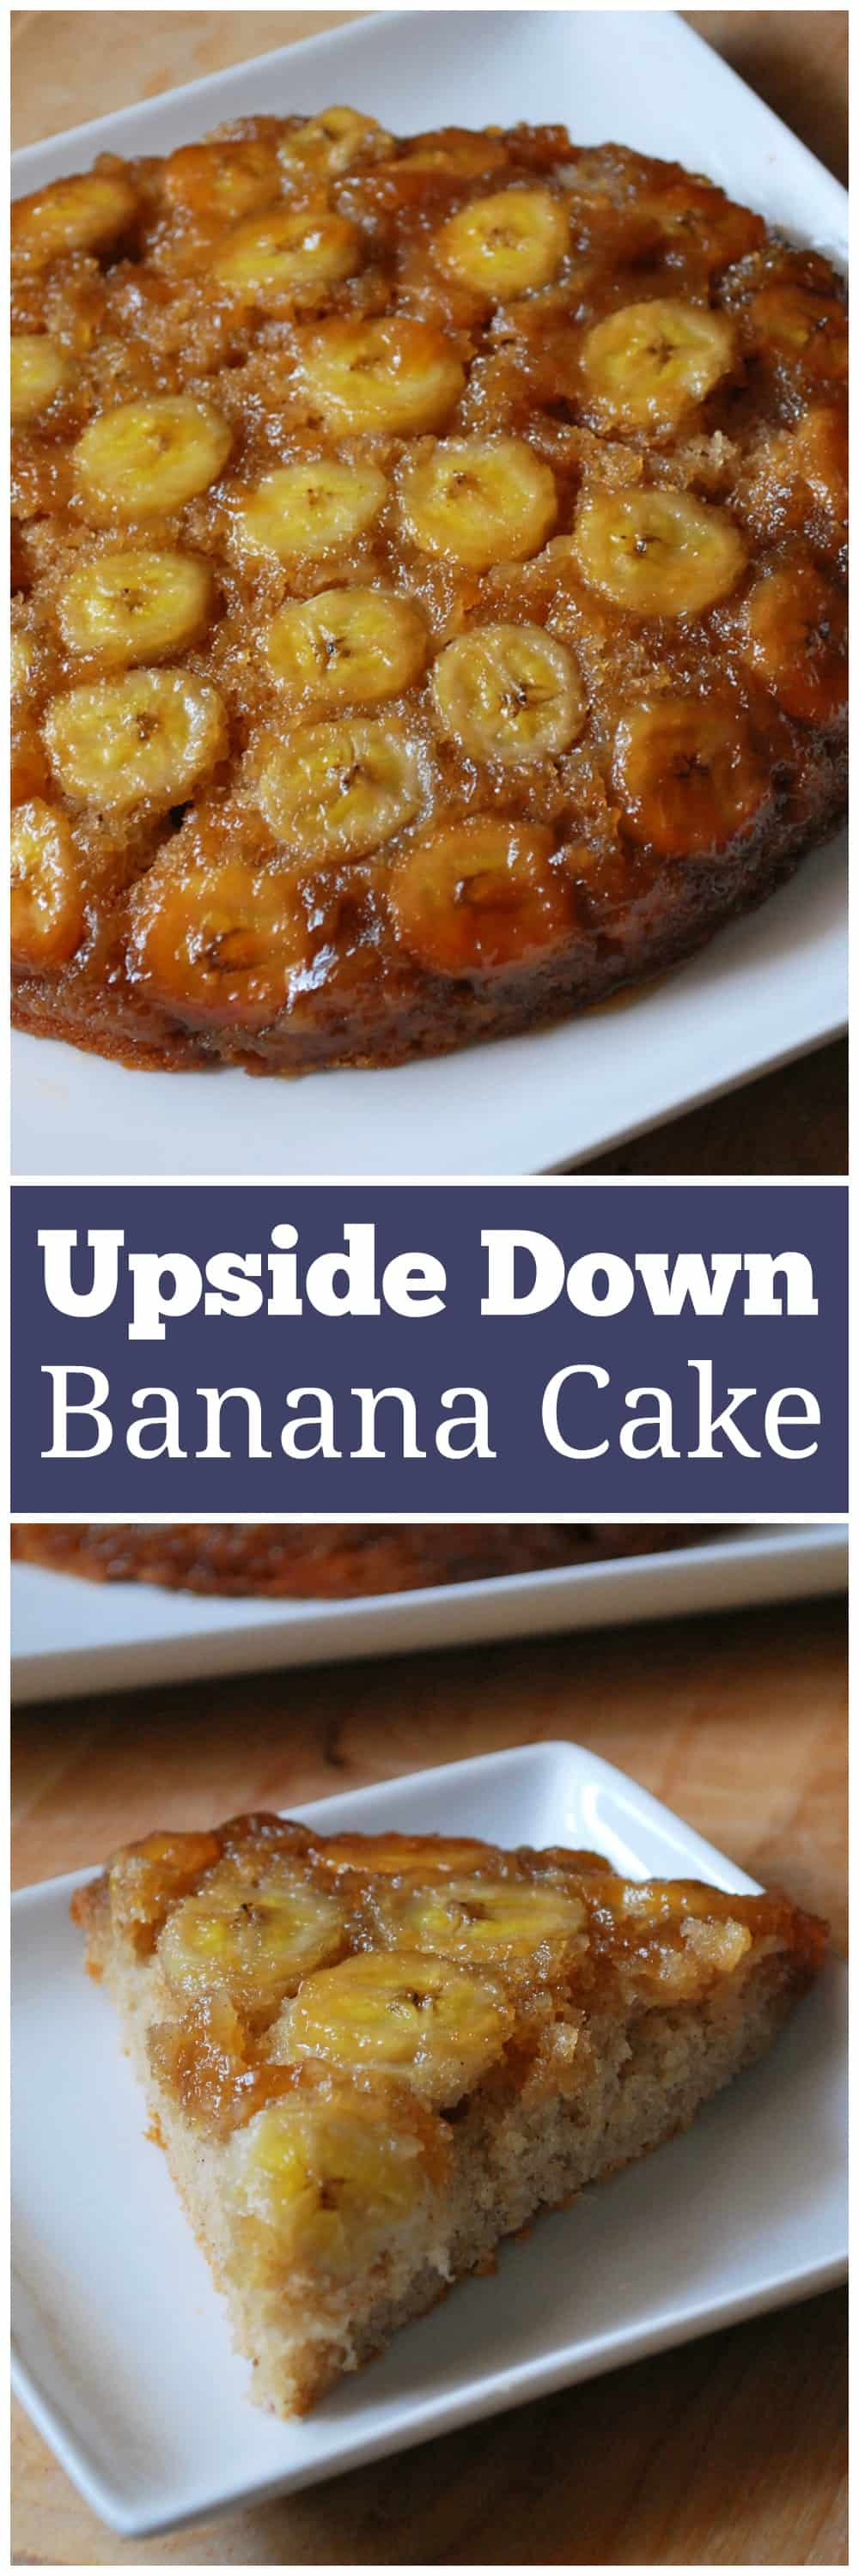 Banana Upside Down Cake - moist vanilla cake baked on top of a layer of caramelized bananas and flipped upside down after baked. It's delicous with a scoop of vanilla ice cream!